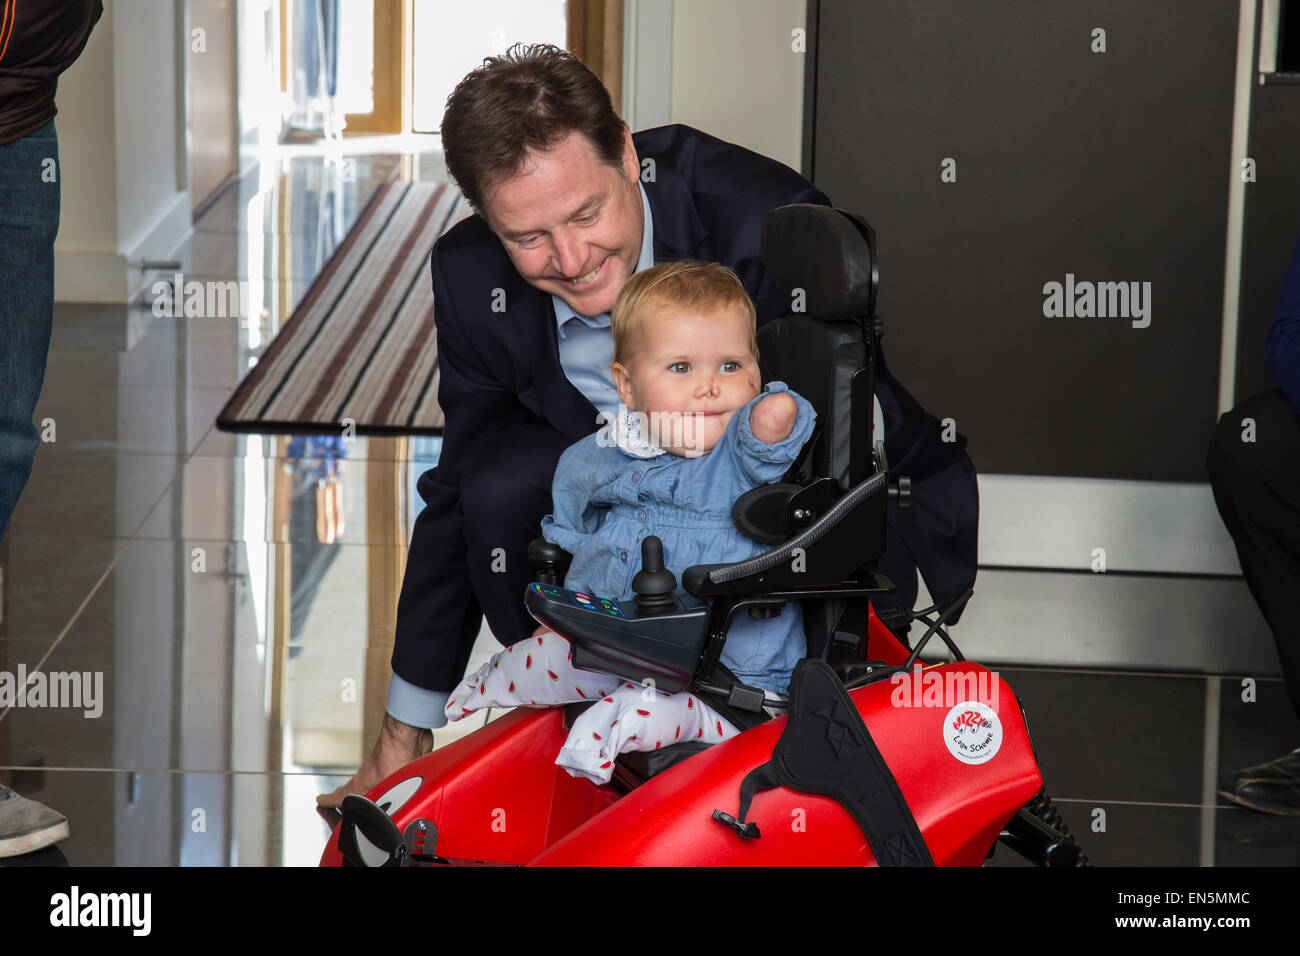 Bath, UK. 28th April, 2015. Nick Clegg visits a new housing development in Bath with local Liberal Democrat candidate - Stock Image